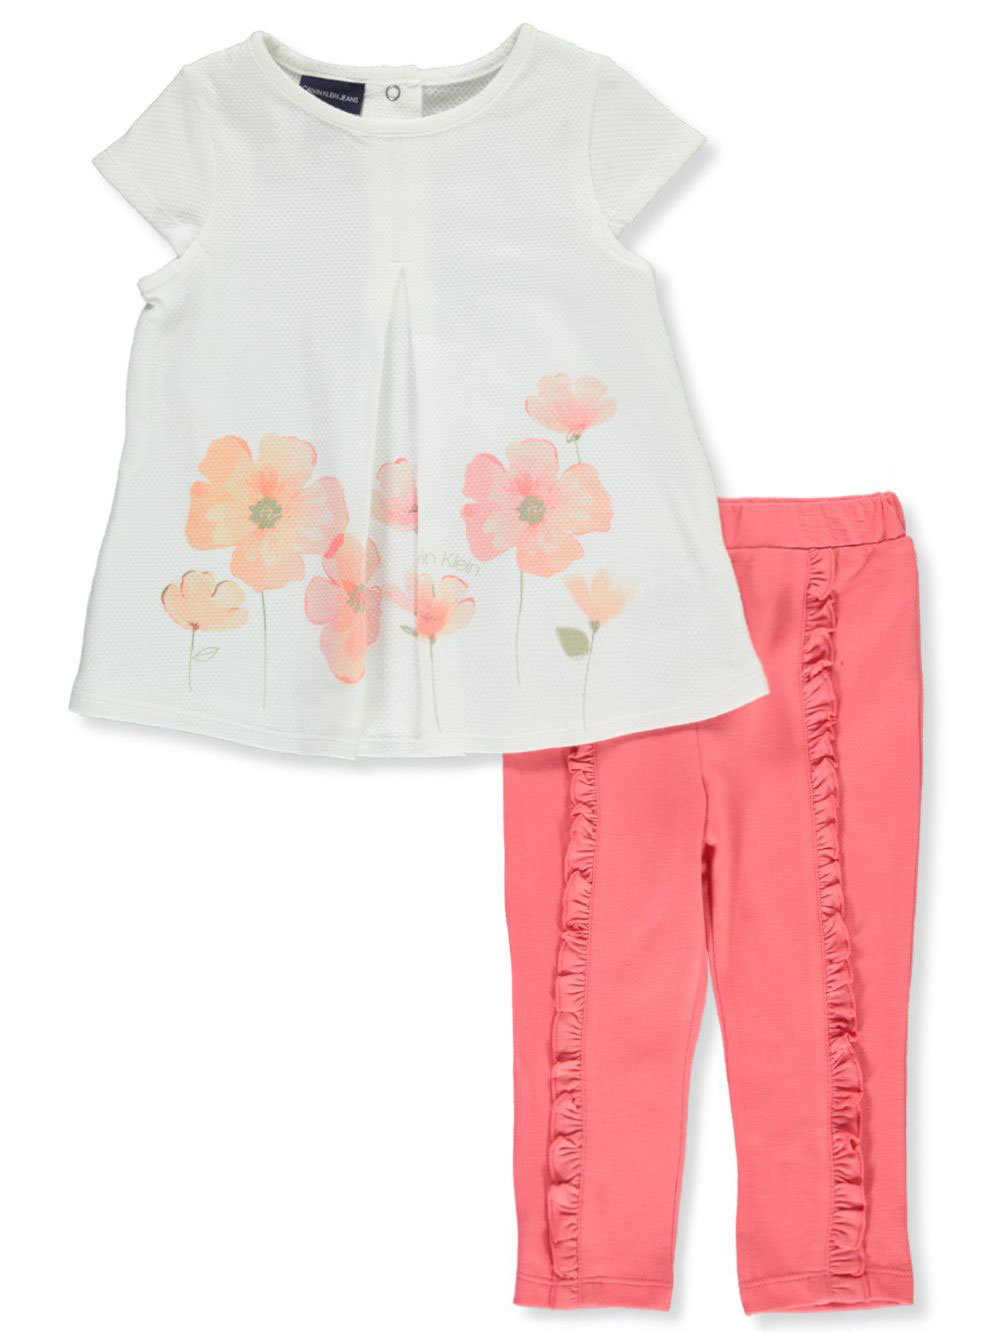 Girls White and Coral Pant Sets